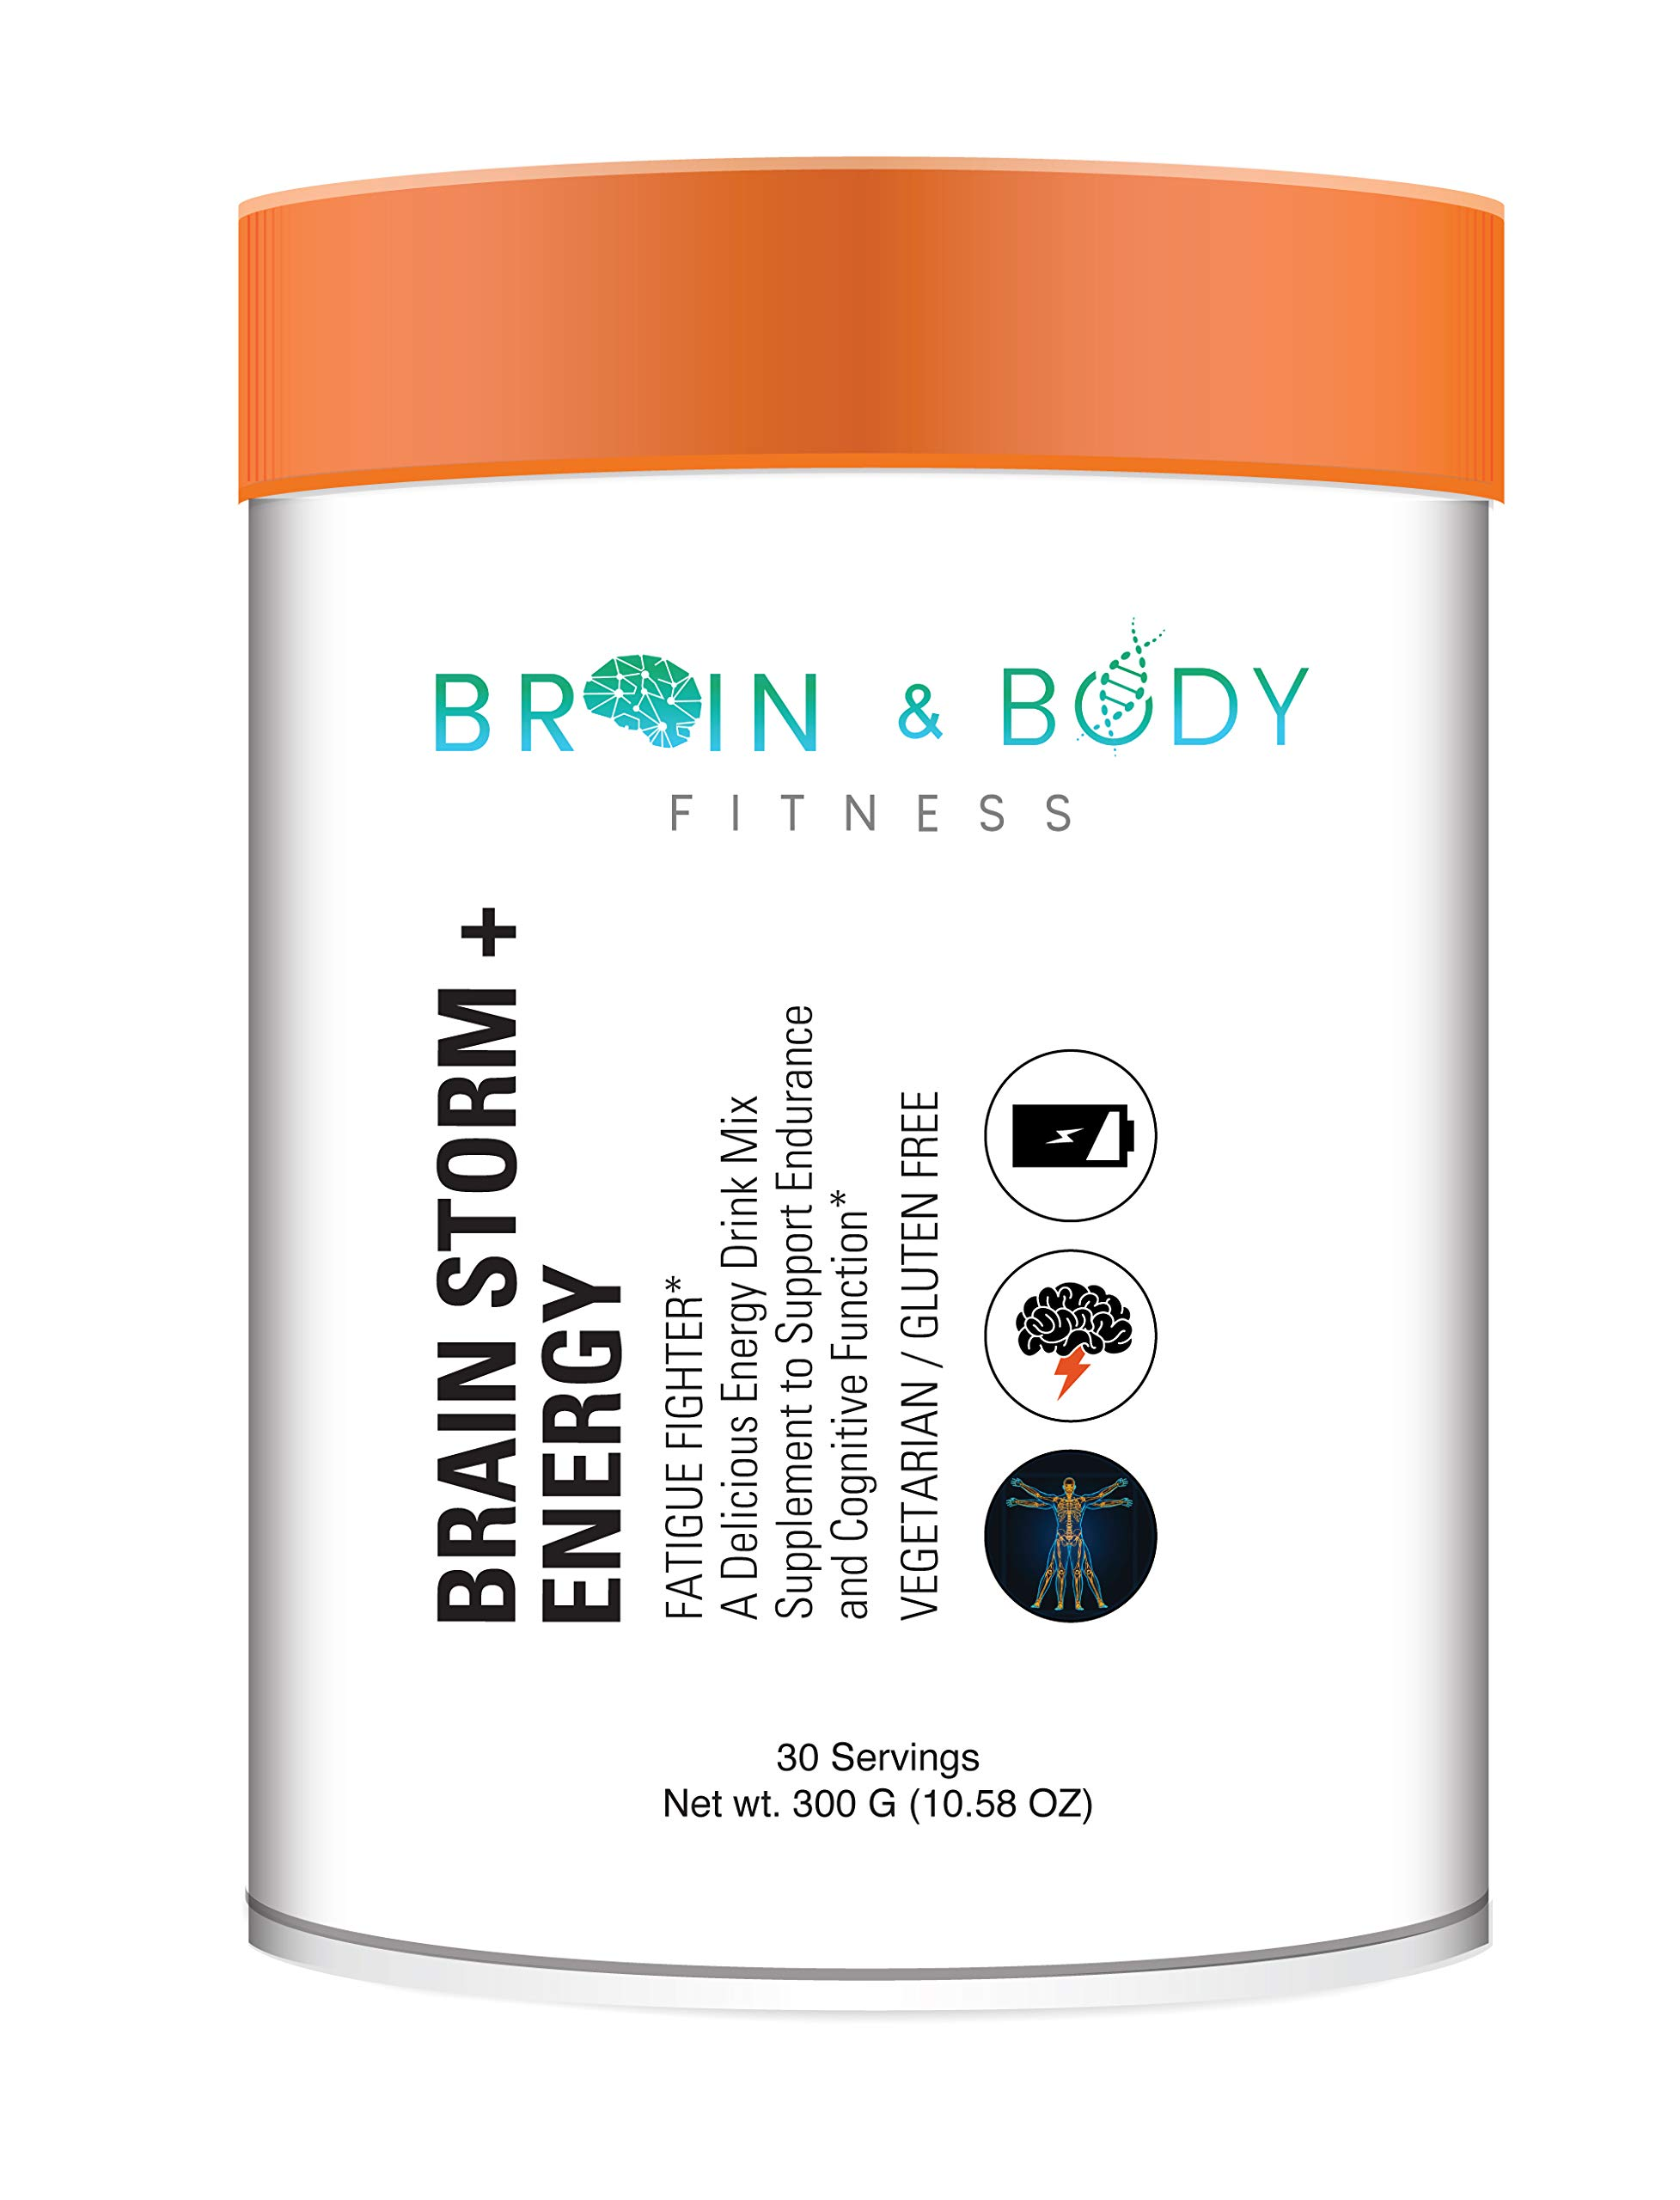 Brain Storm + Energy | Super Nootropic Brain Booster Supplement, Enhance Focus, Boost Concentration & Improve Memory, Mind Enhancement with N, N Dimethylglycine for Mental Alertness & Brain Function by Brain and Body Fitness Supplements